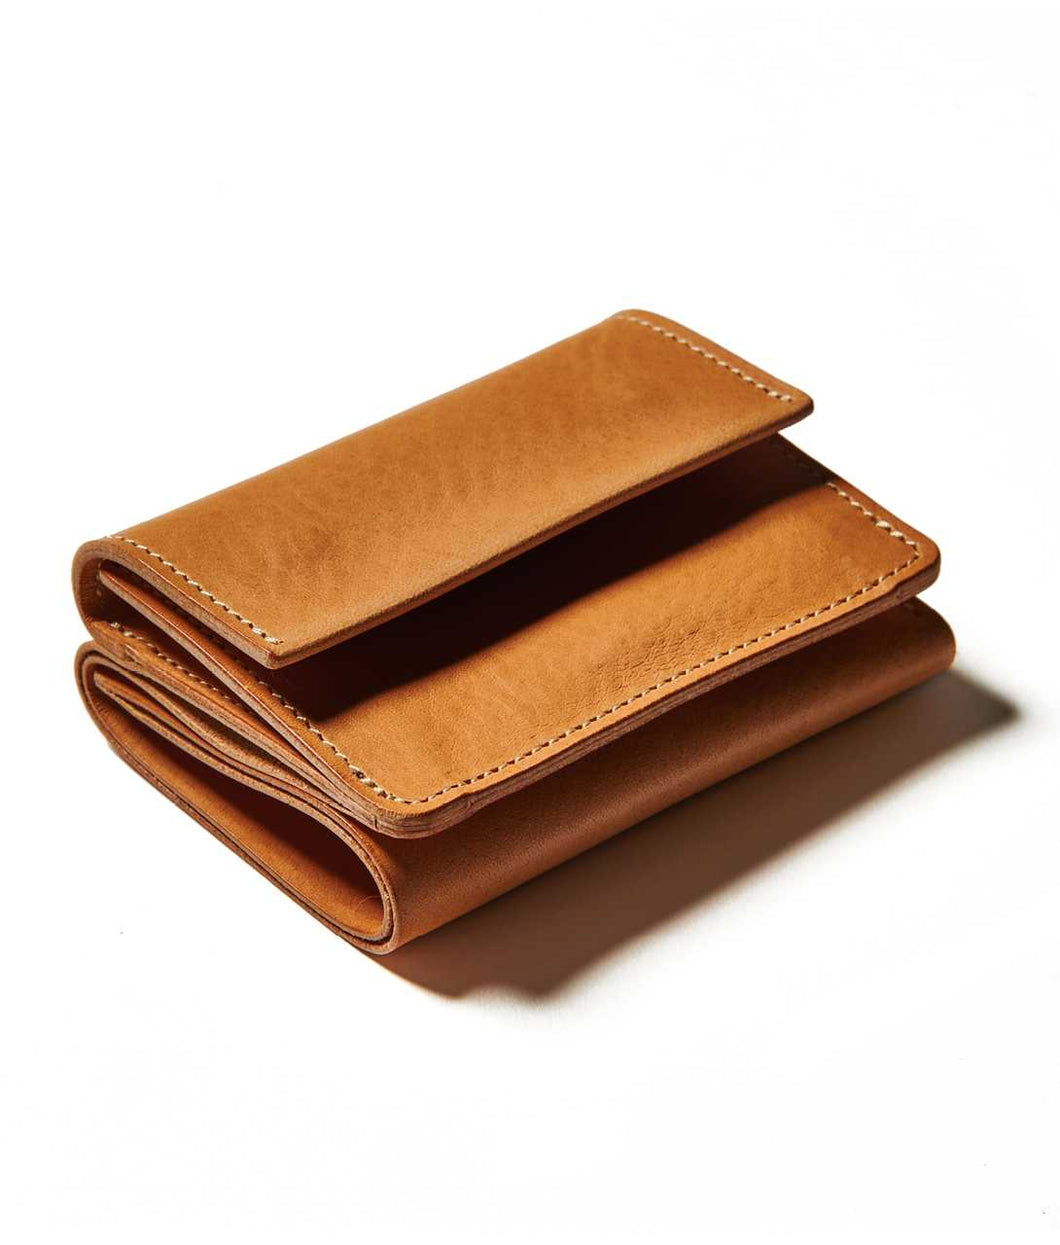 〈LIM DESIGN〉MINI WALLET / ミニウォレット(NATURAL)